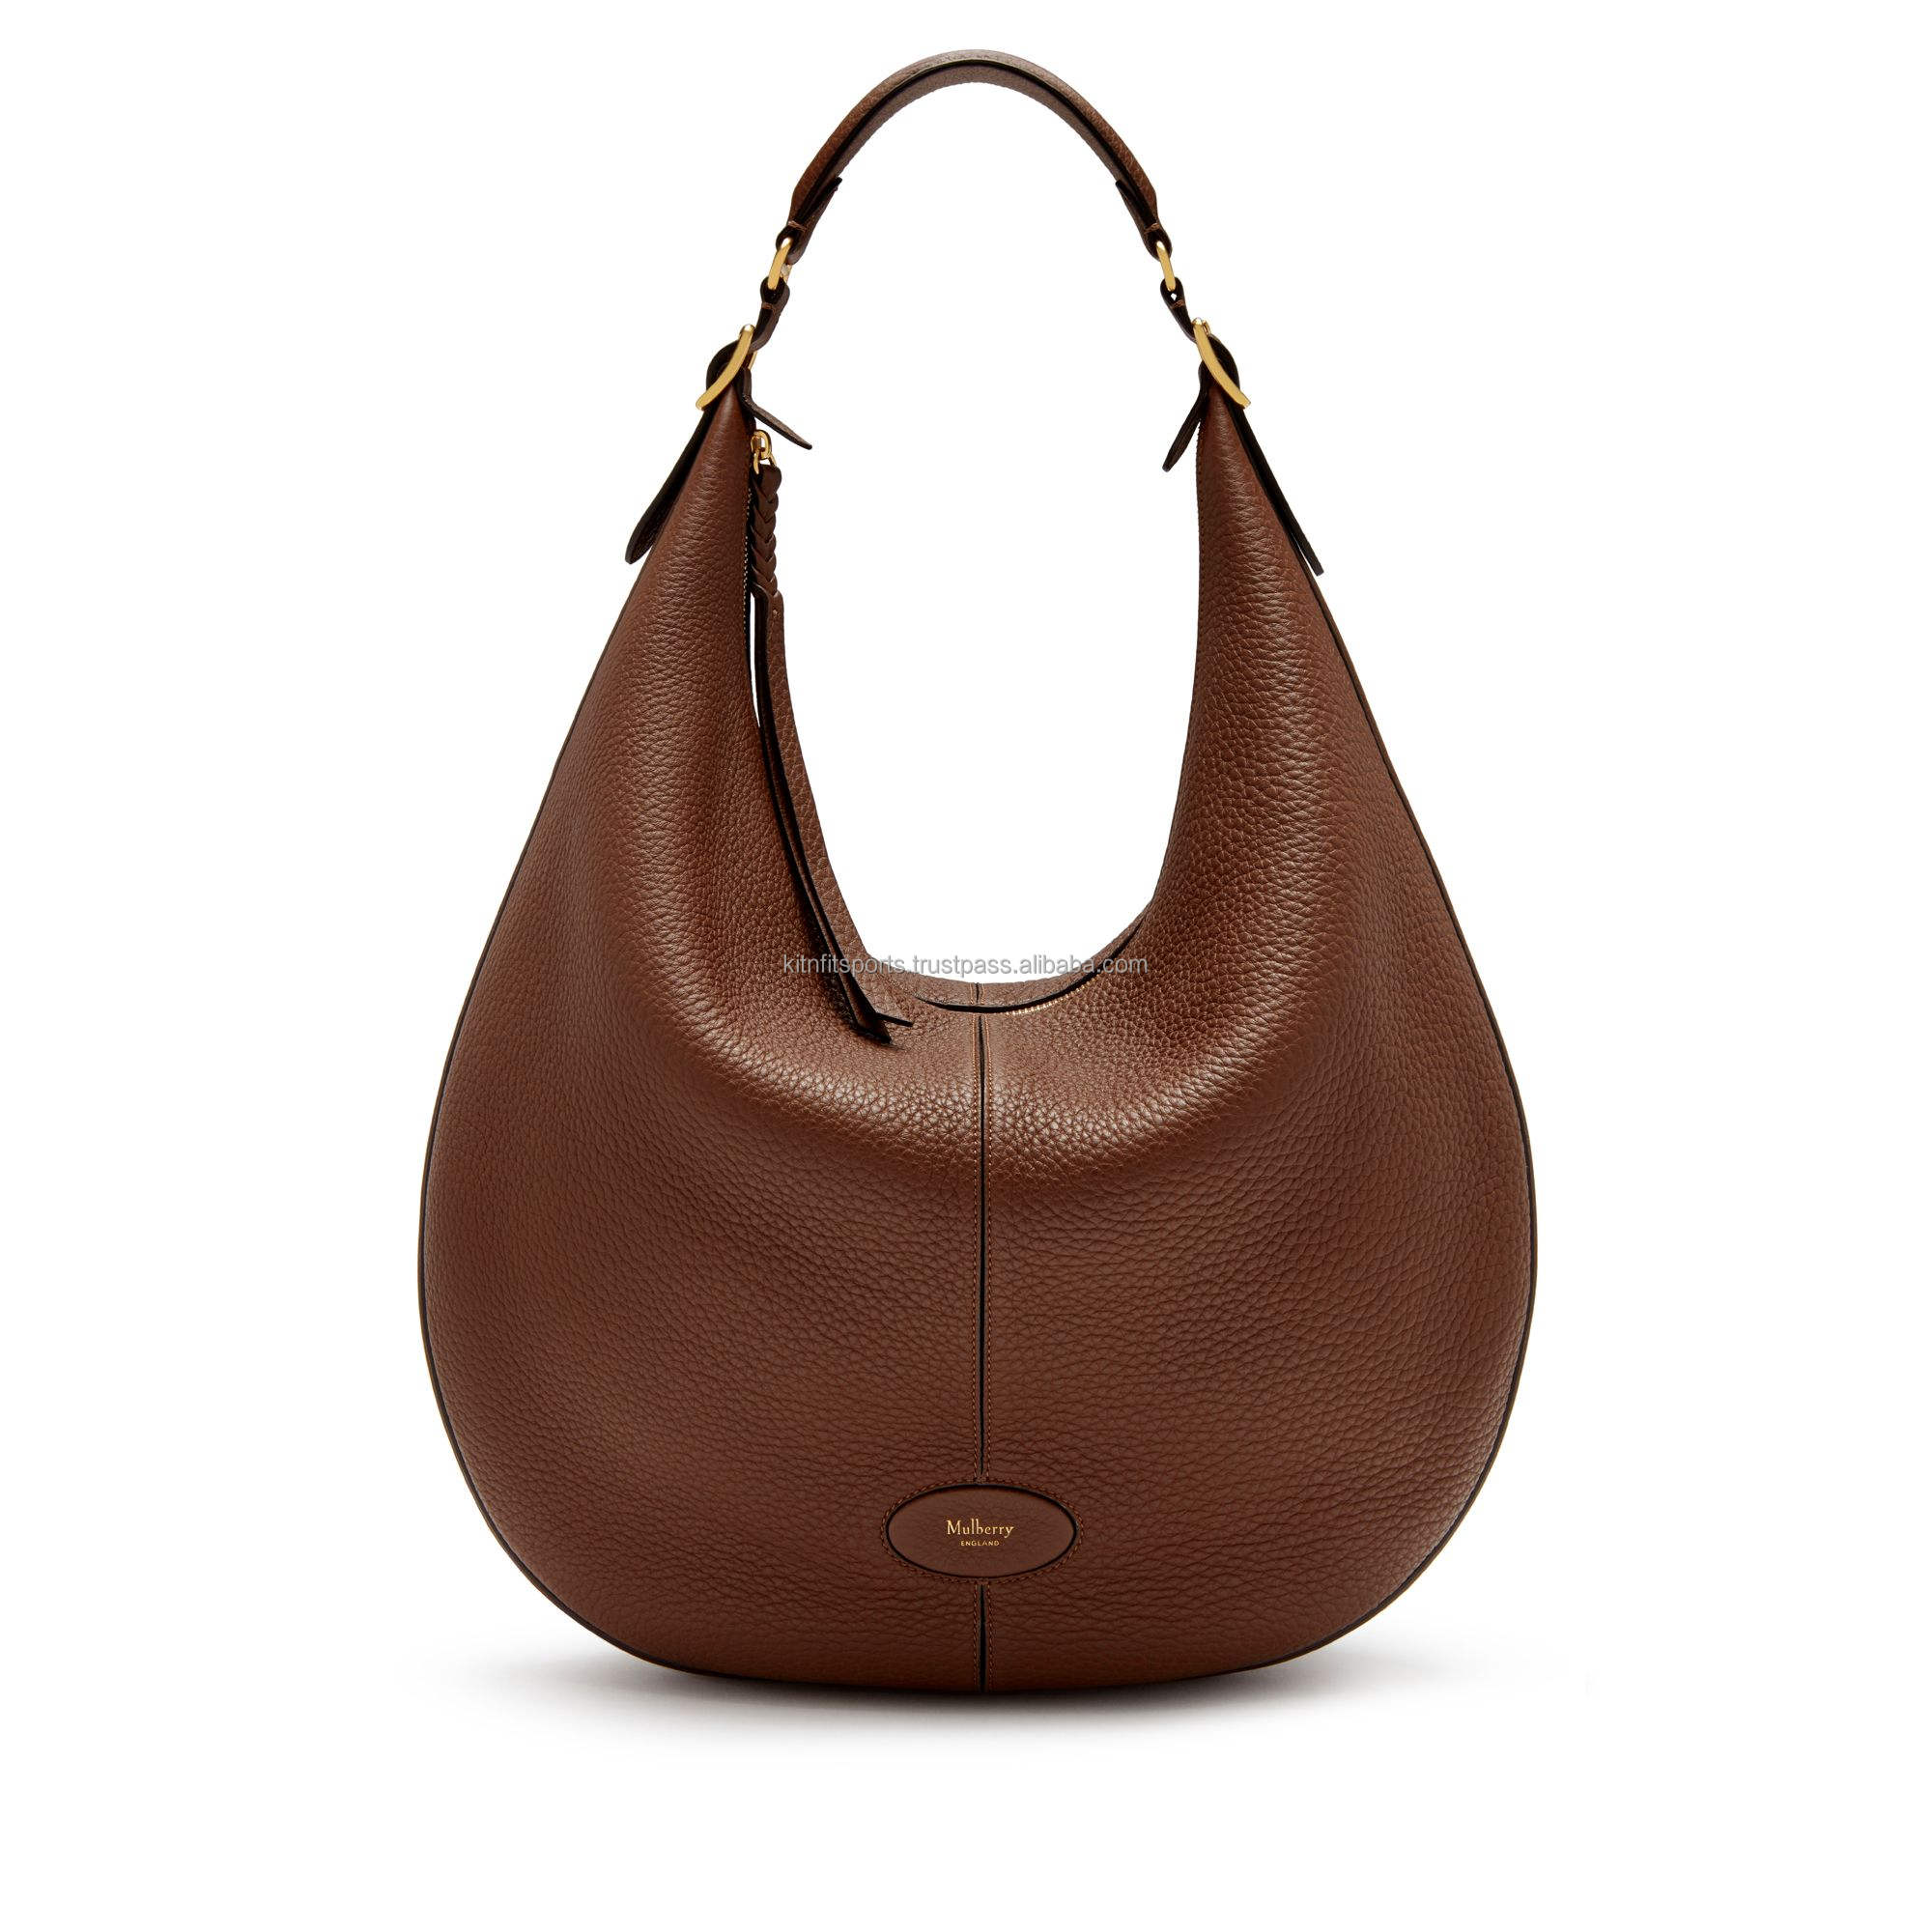 2019 Branded Top Quality Lady Genuine Leather Bag Wholesale Pakistan Supplier Susan Leather Handbags